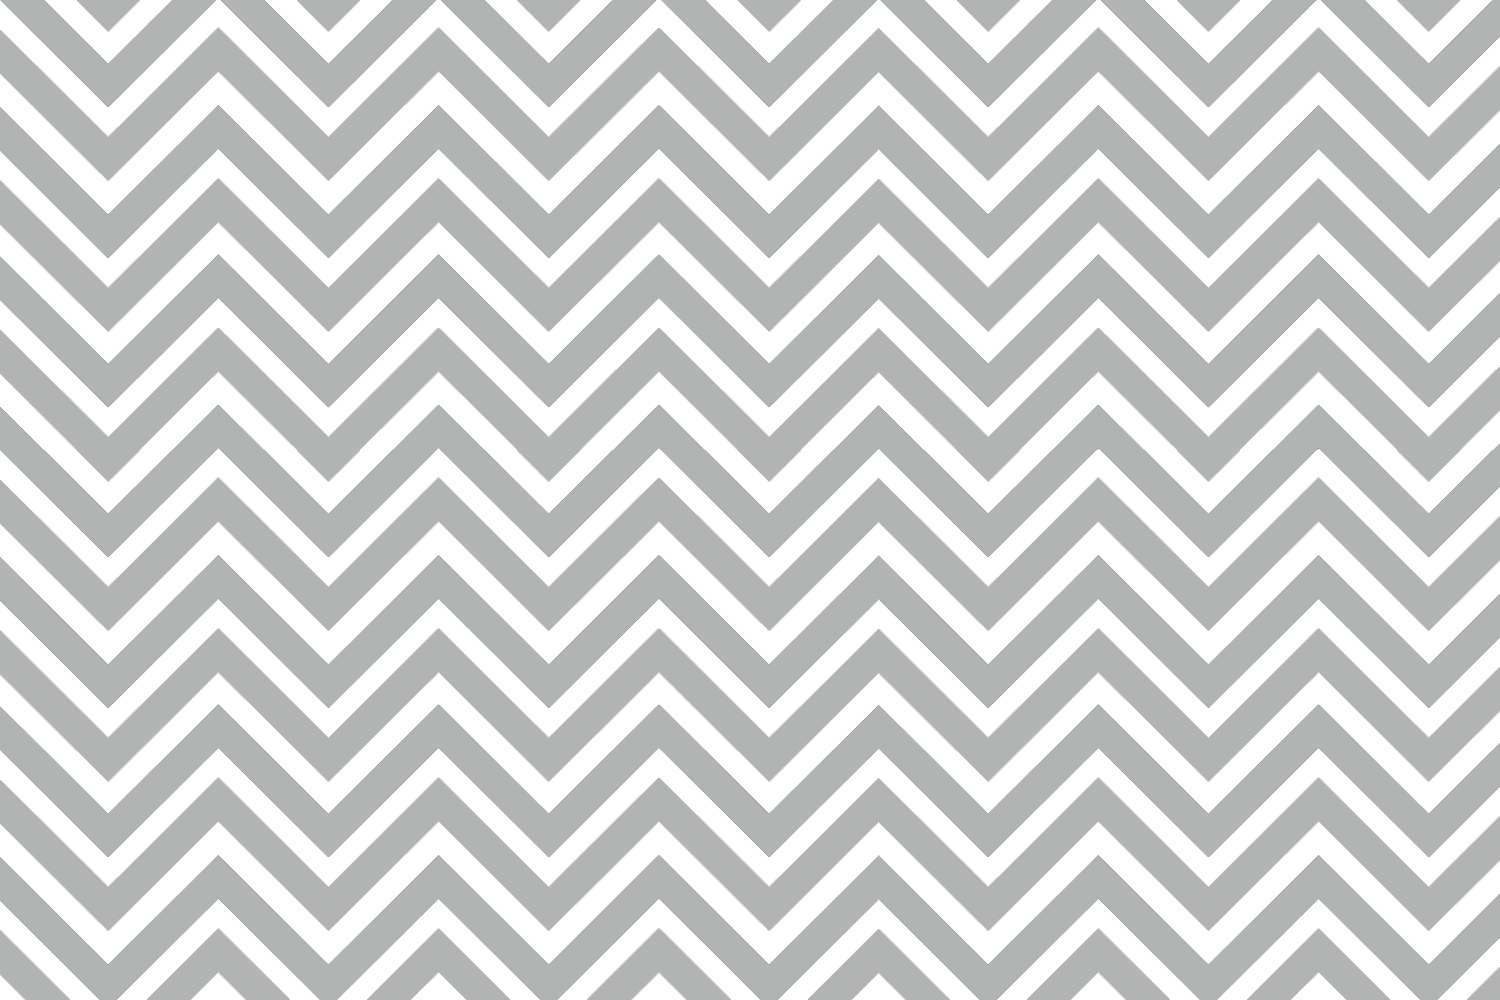 Grey Chevron Wallpaper - WallpaperSafari